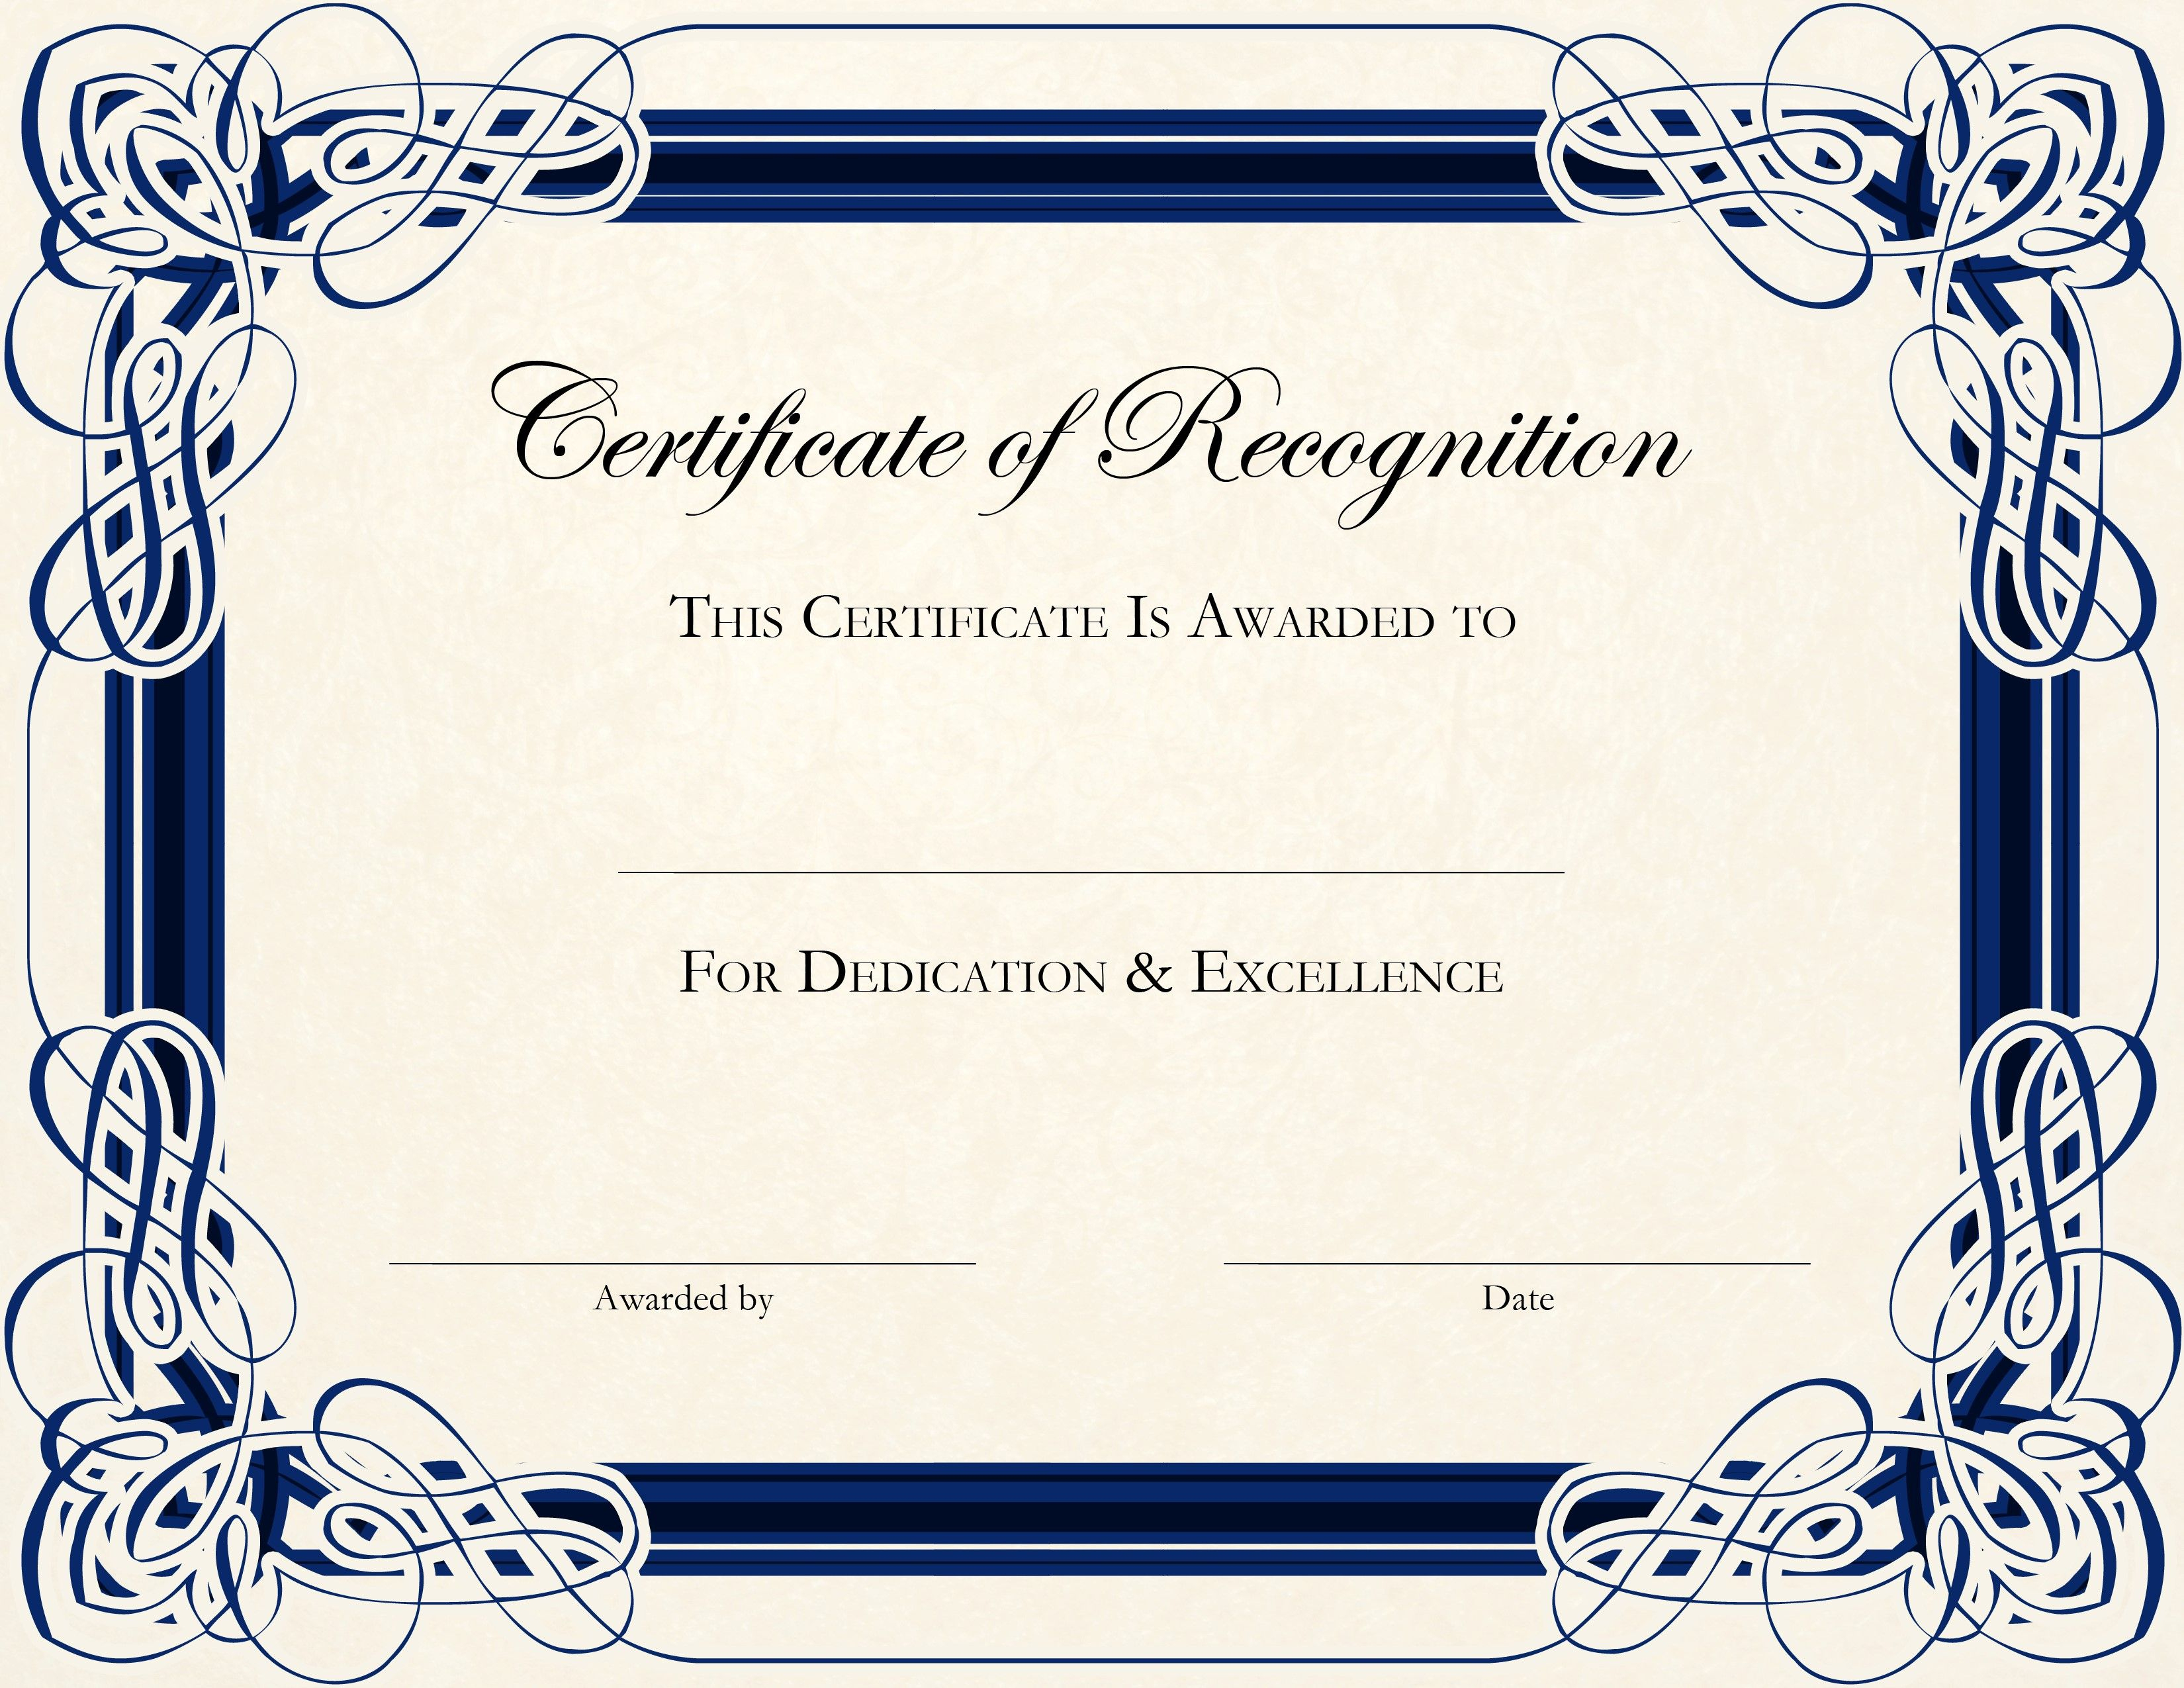 Free Printable Certificate Templates For Teachers | Besttemplate123 - Free Printable Certificates For Teachers